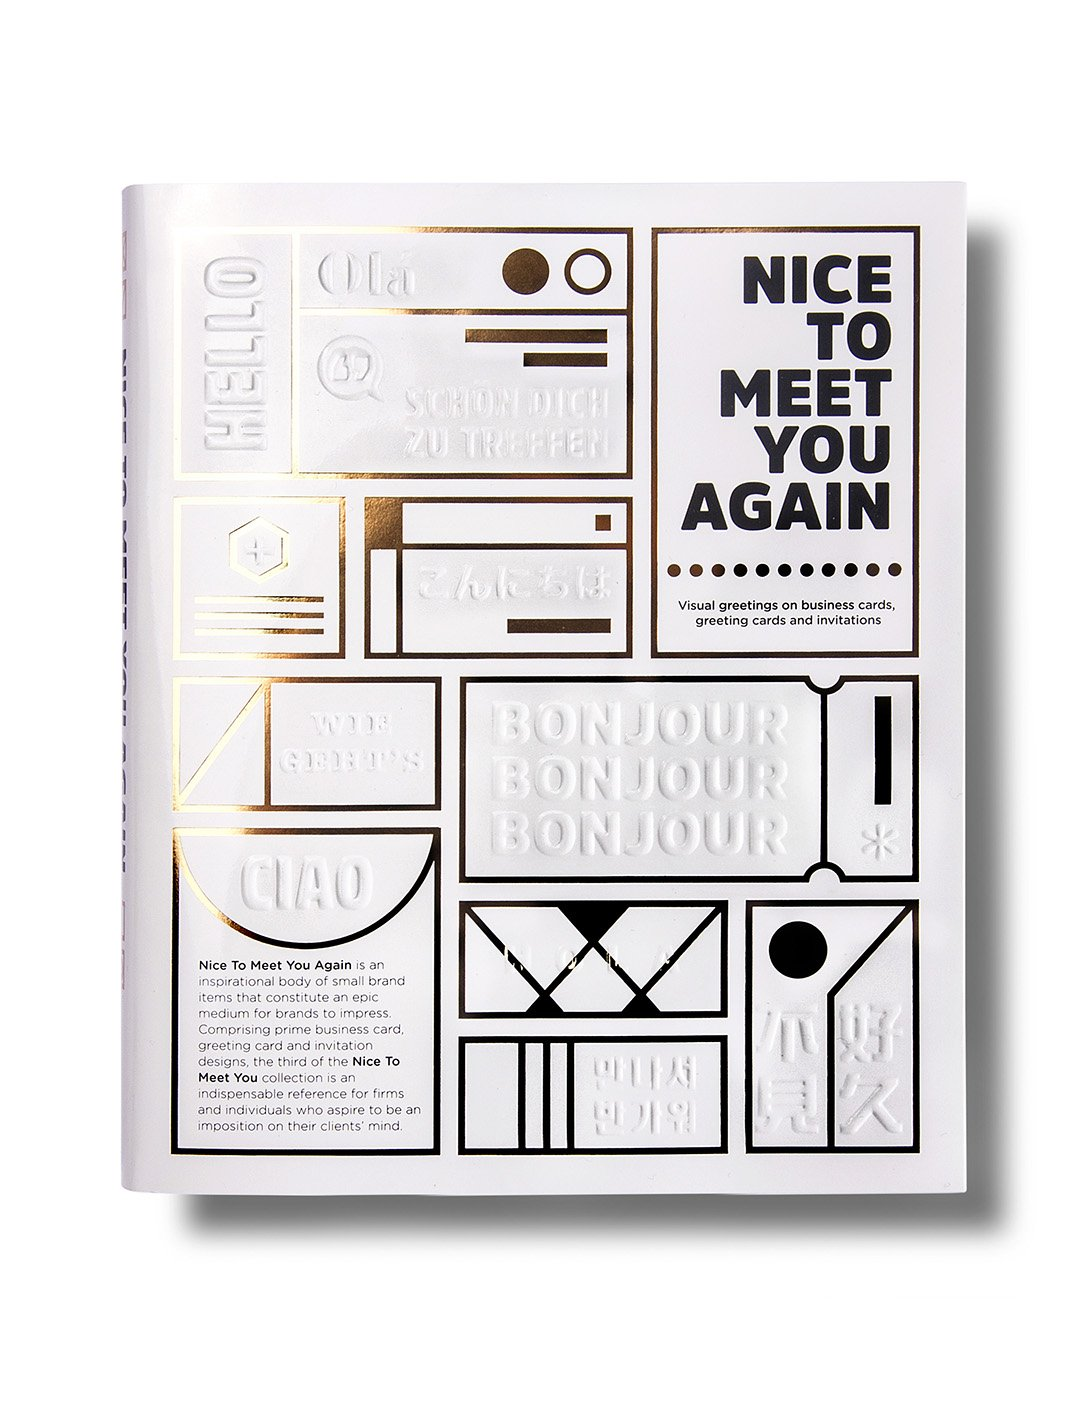 Nice to Meet You Again Visual Greetings on Business Cards – Greeting Cards and Invitations